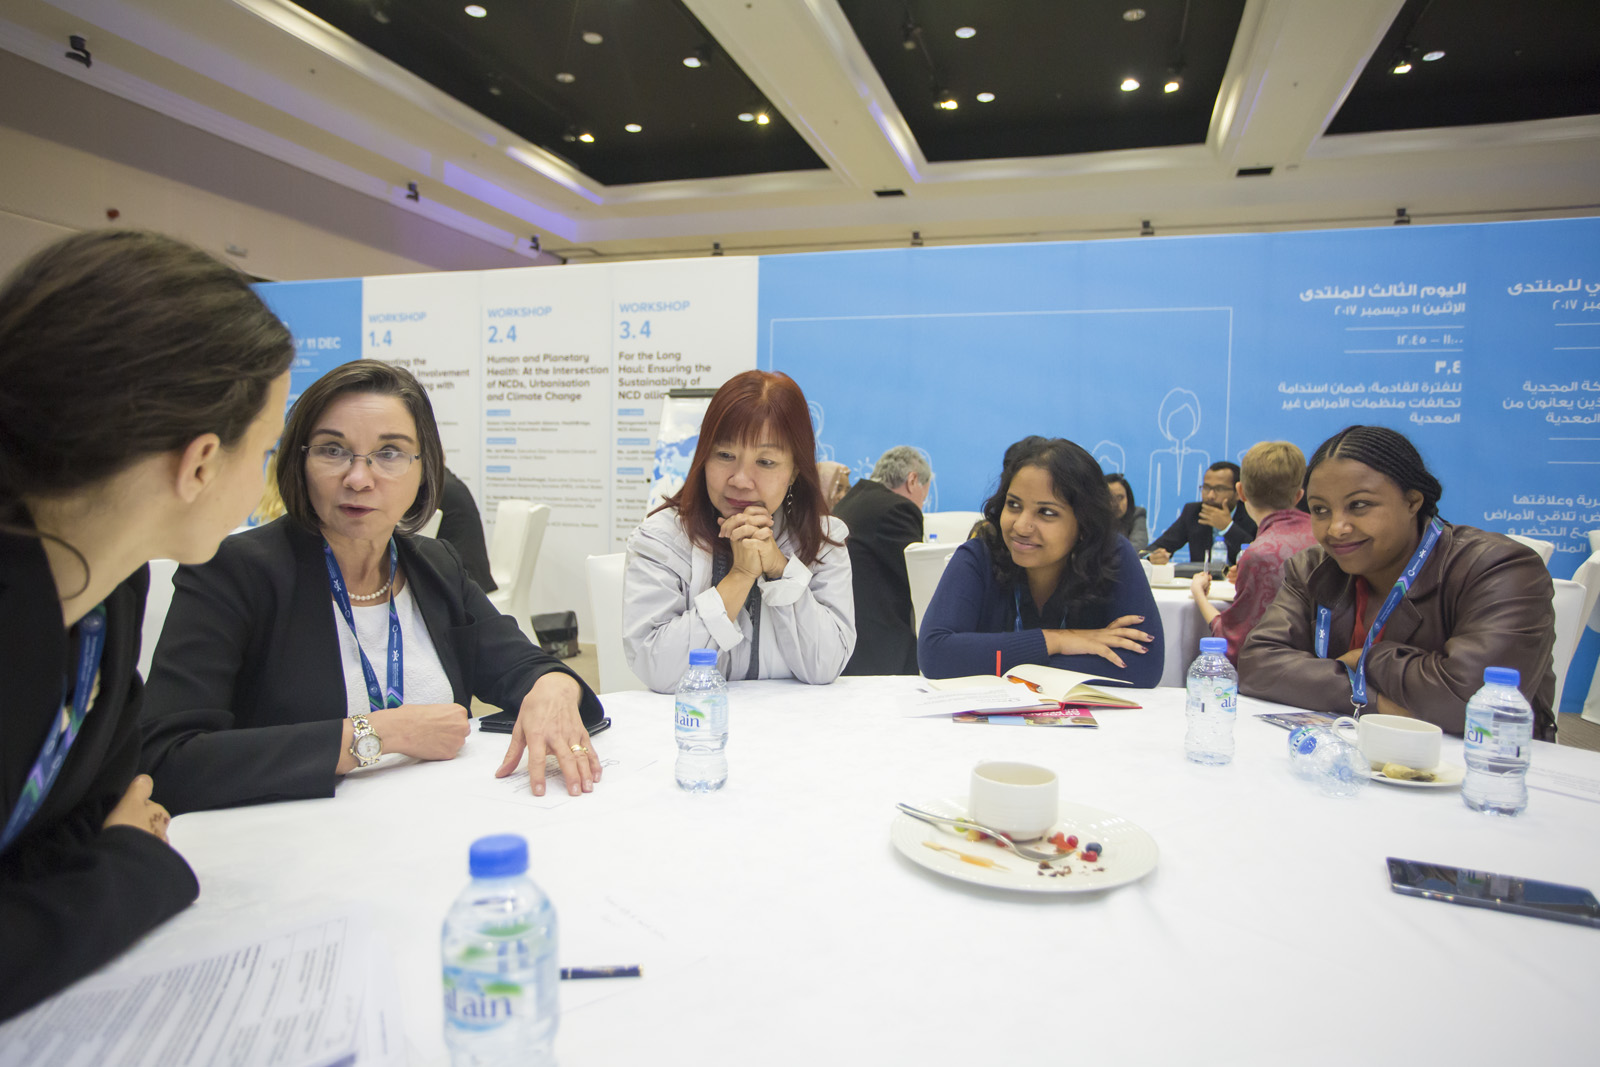 Vindhya Vatsyayan engaged in discussions during a workshop on promoting the meaningful involvement of people living with NCDs © Gilberto Lontro/NCD Alliance